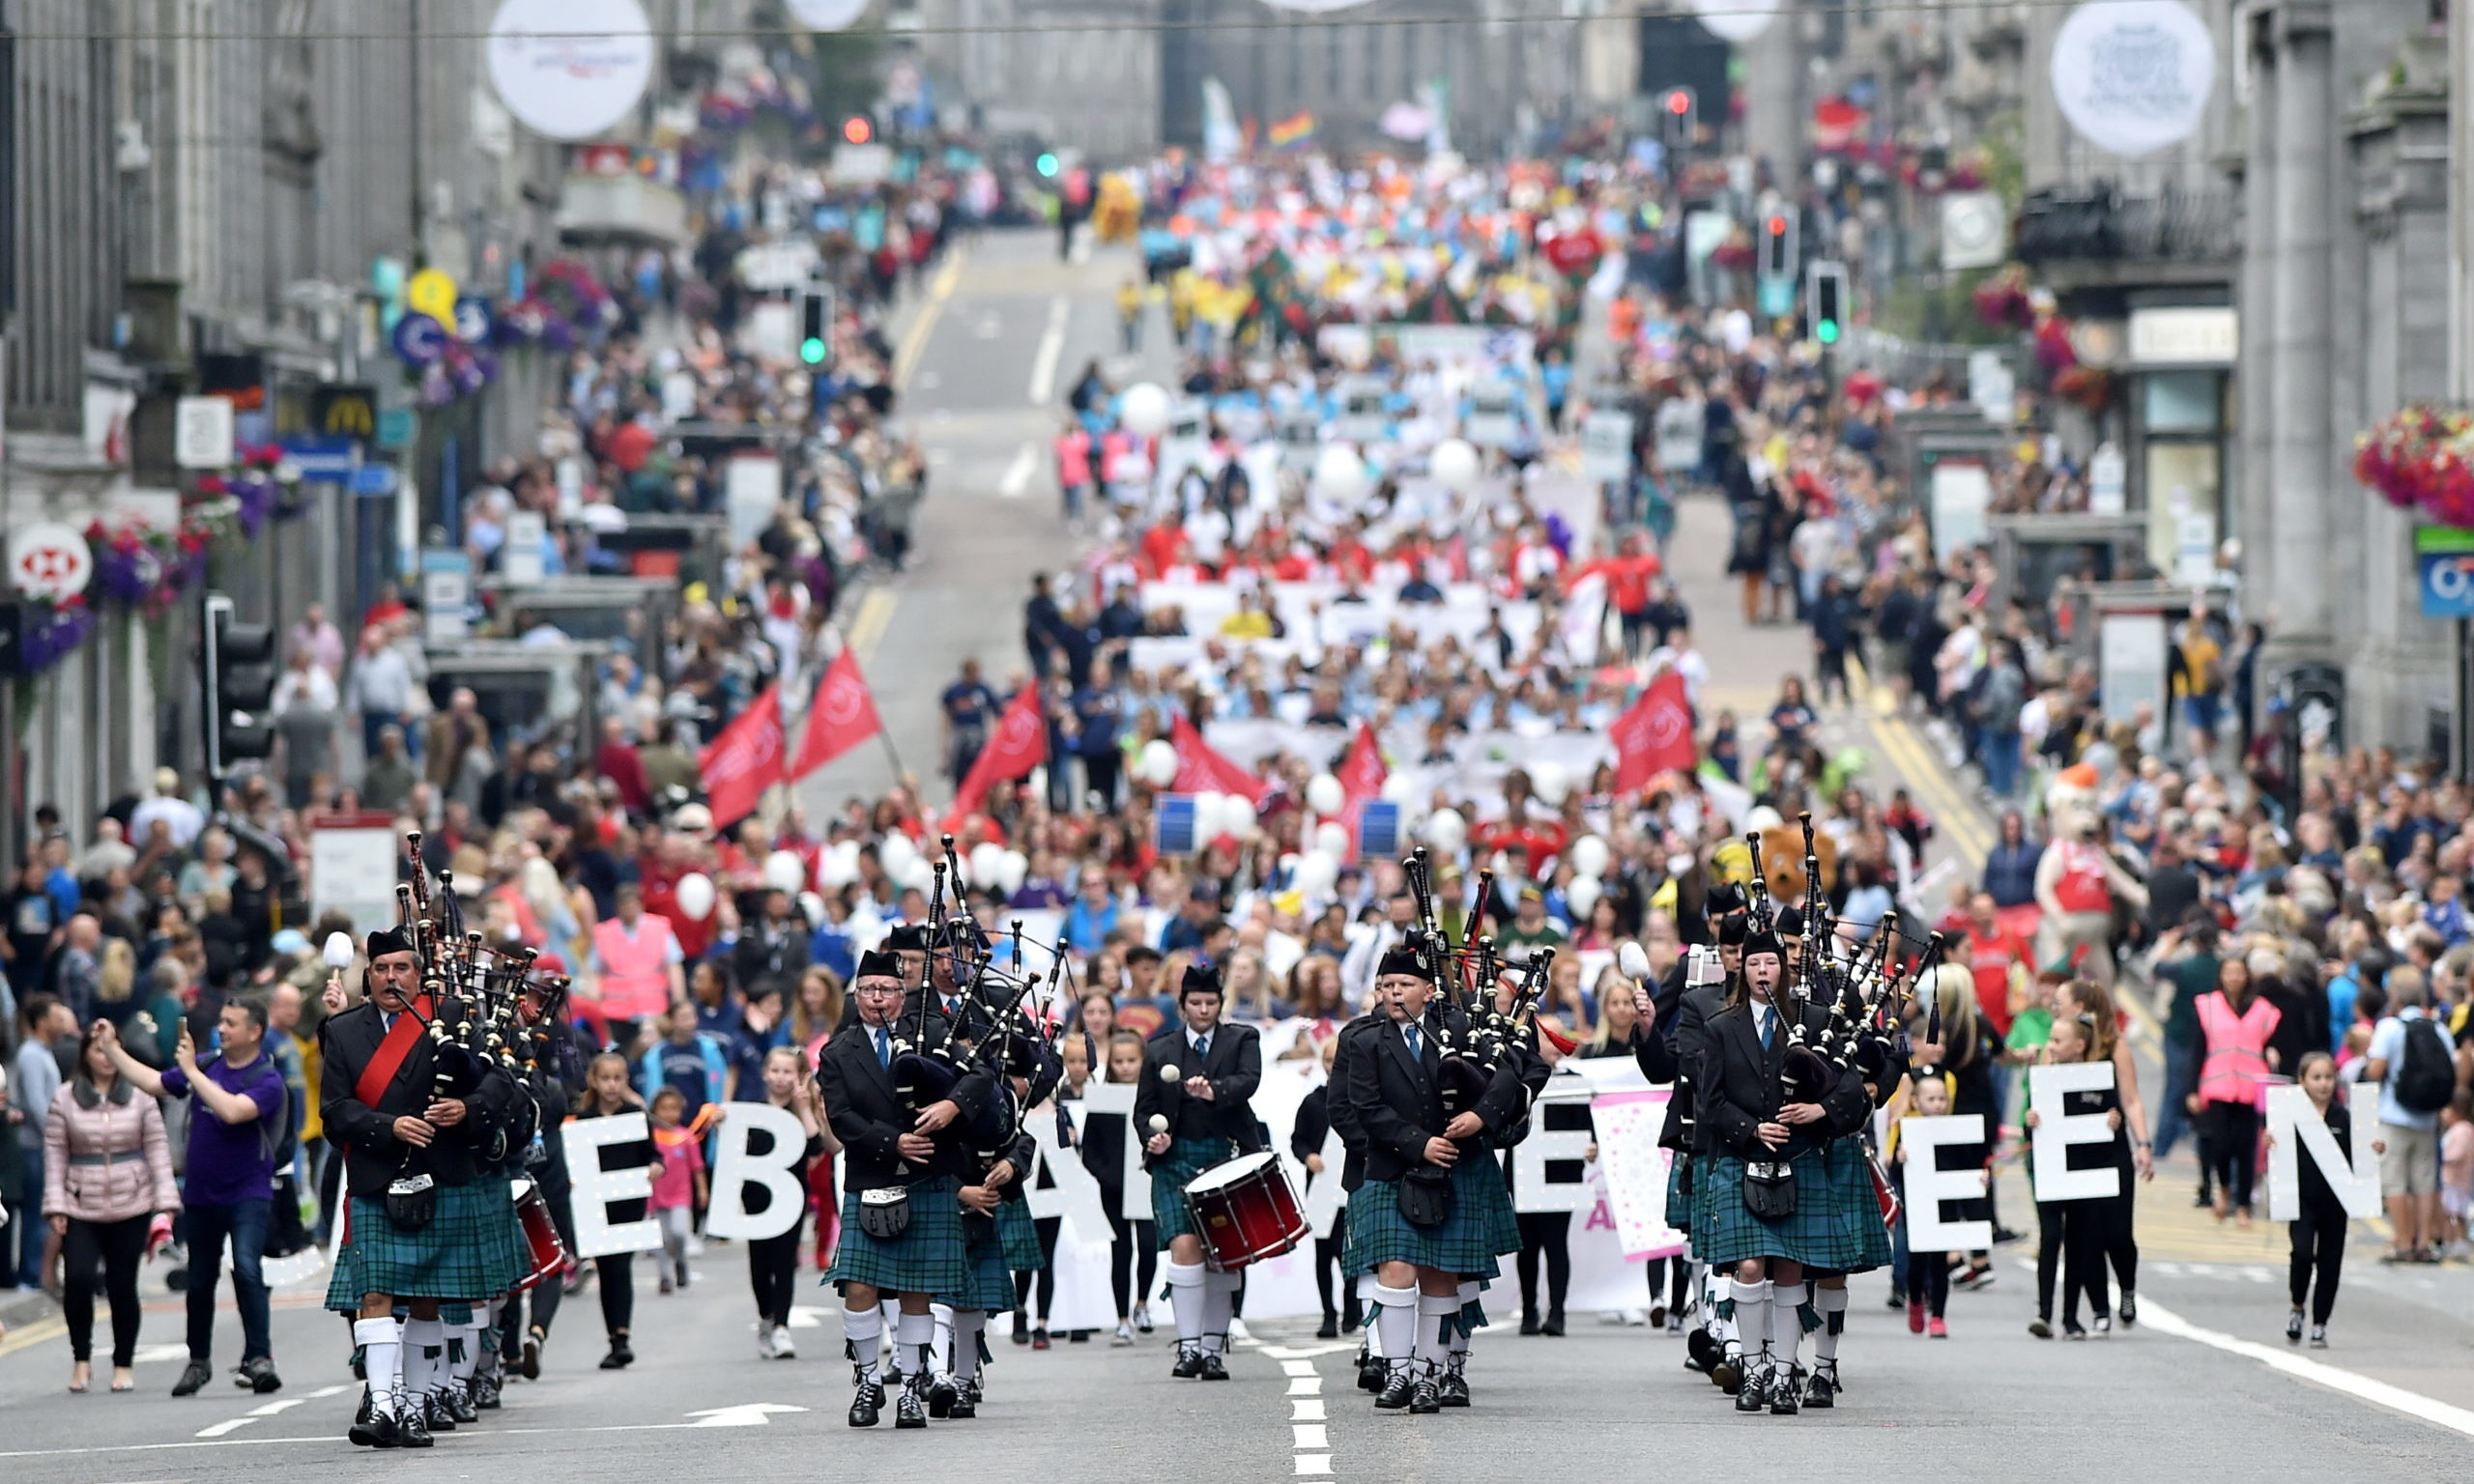 The Celebrate Aberdeen parade down Union Street in 2019. Picture by Scott Baxter.